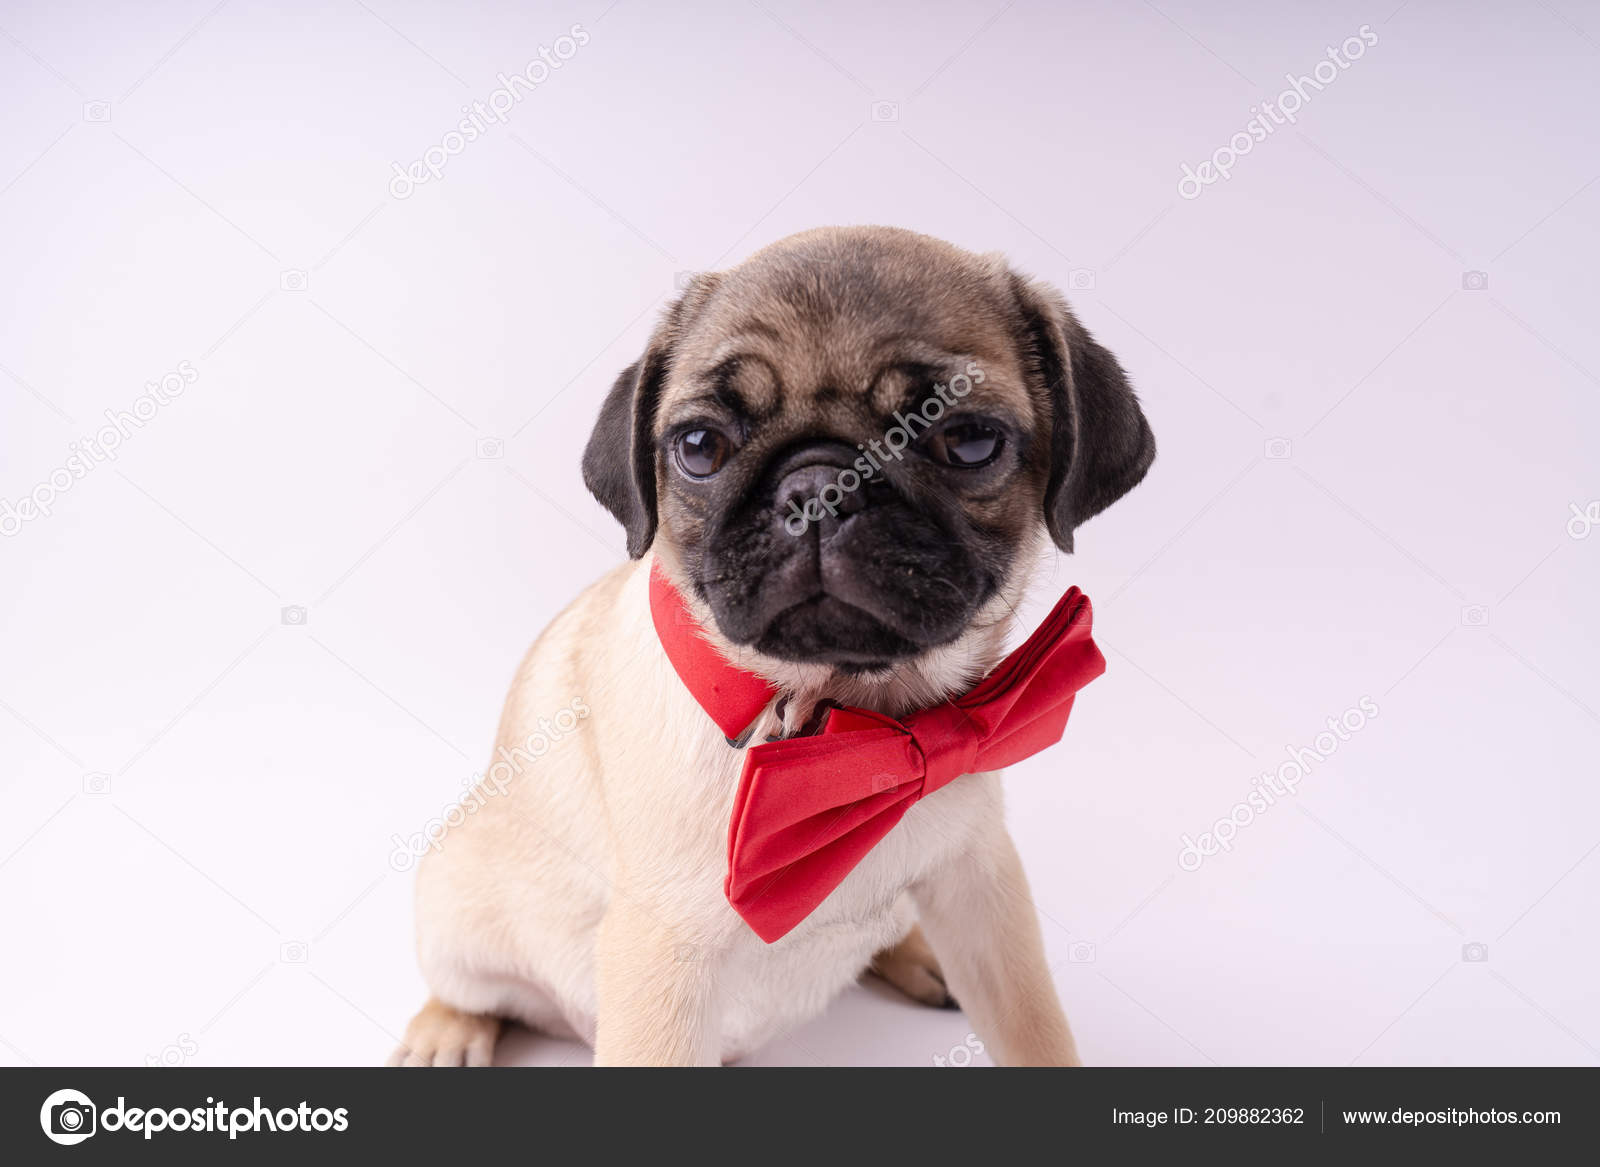 Funny Pug Puppy White Background Empty Space Text Pug Resting Stock Photo C Epidemiks 209882362